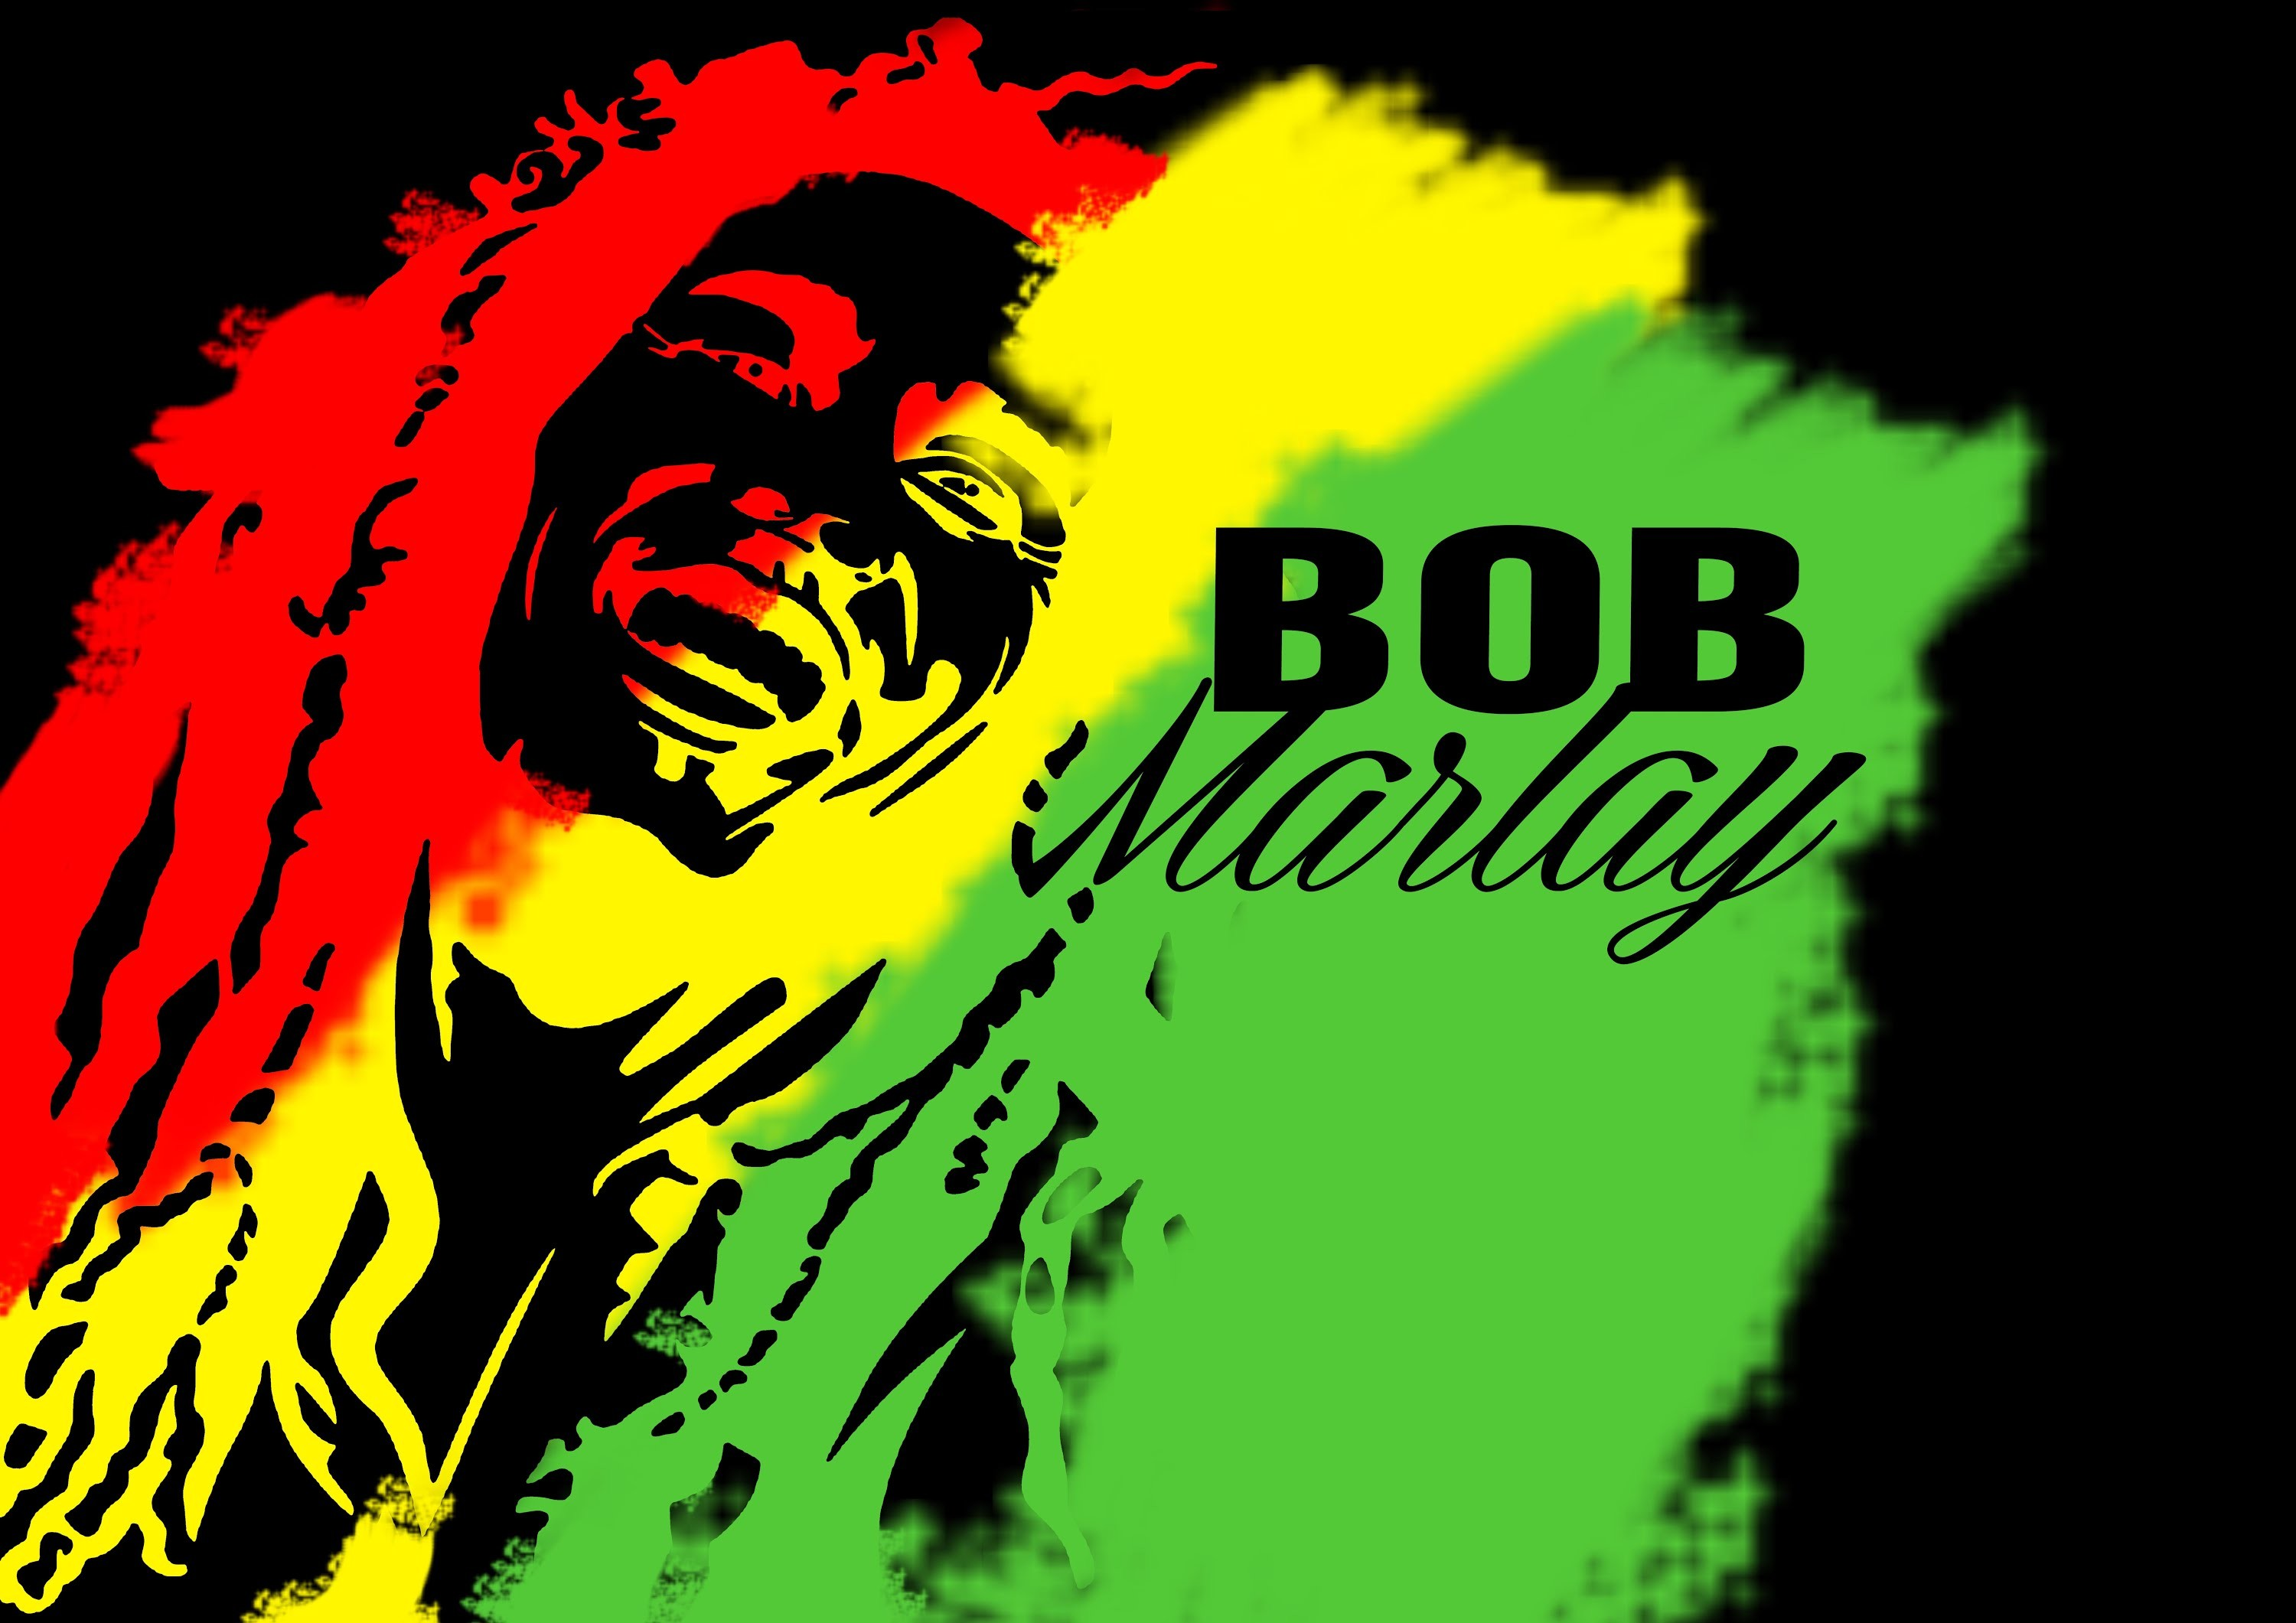 2048x2048 Bob Marley Wallpapers IPad Famous Singer Frases Popular Reggae Best Ever Rasta Wallpaper Of Widescreen